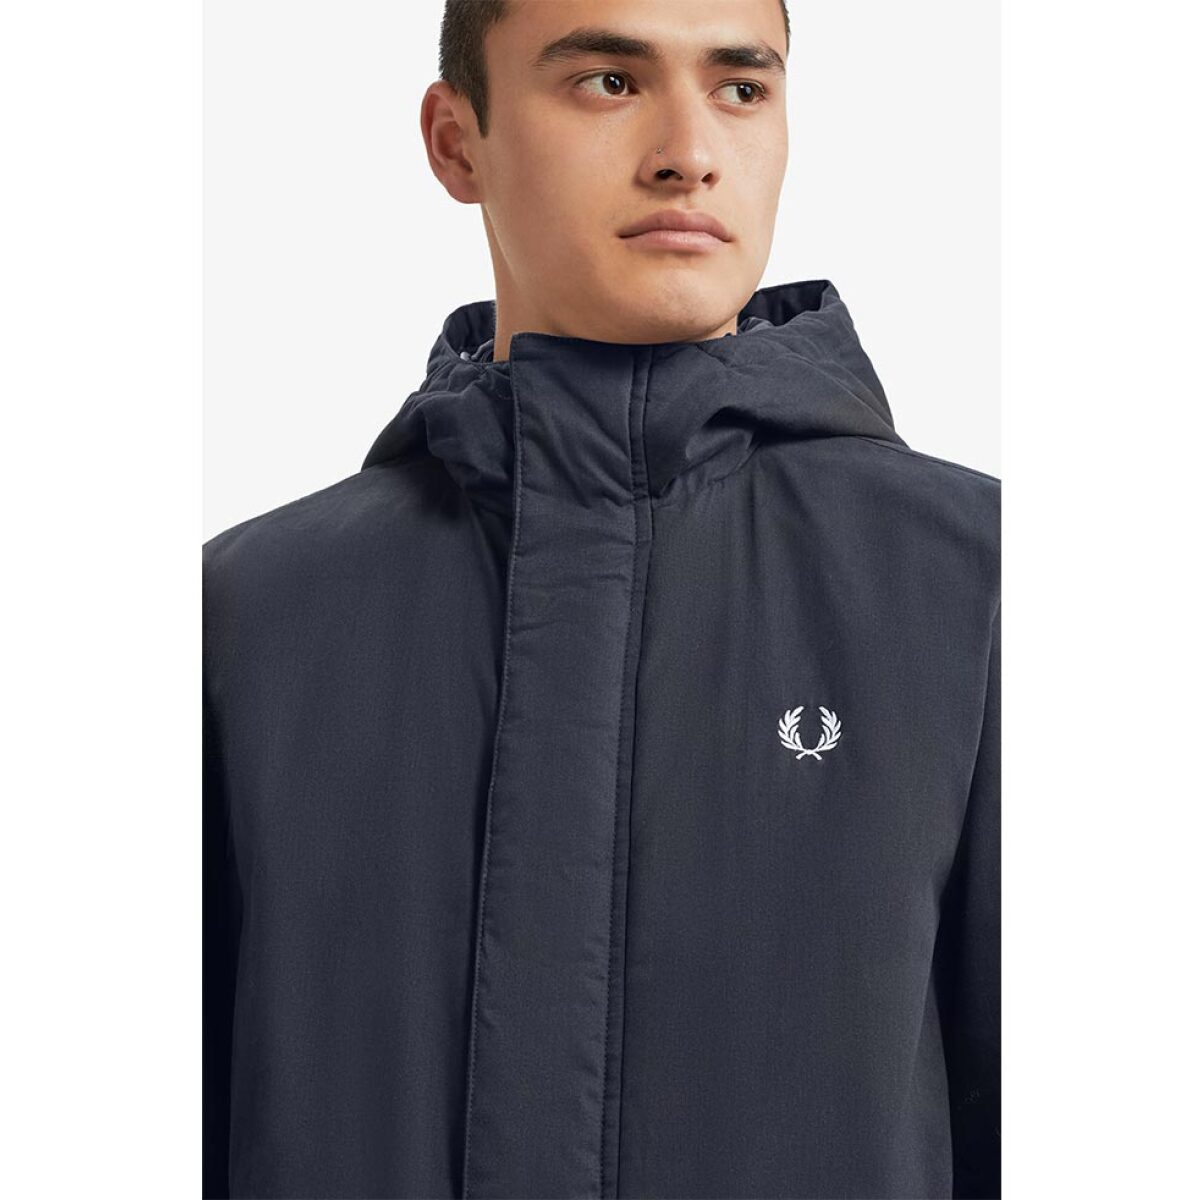 fred perry j7513 1